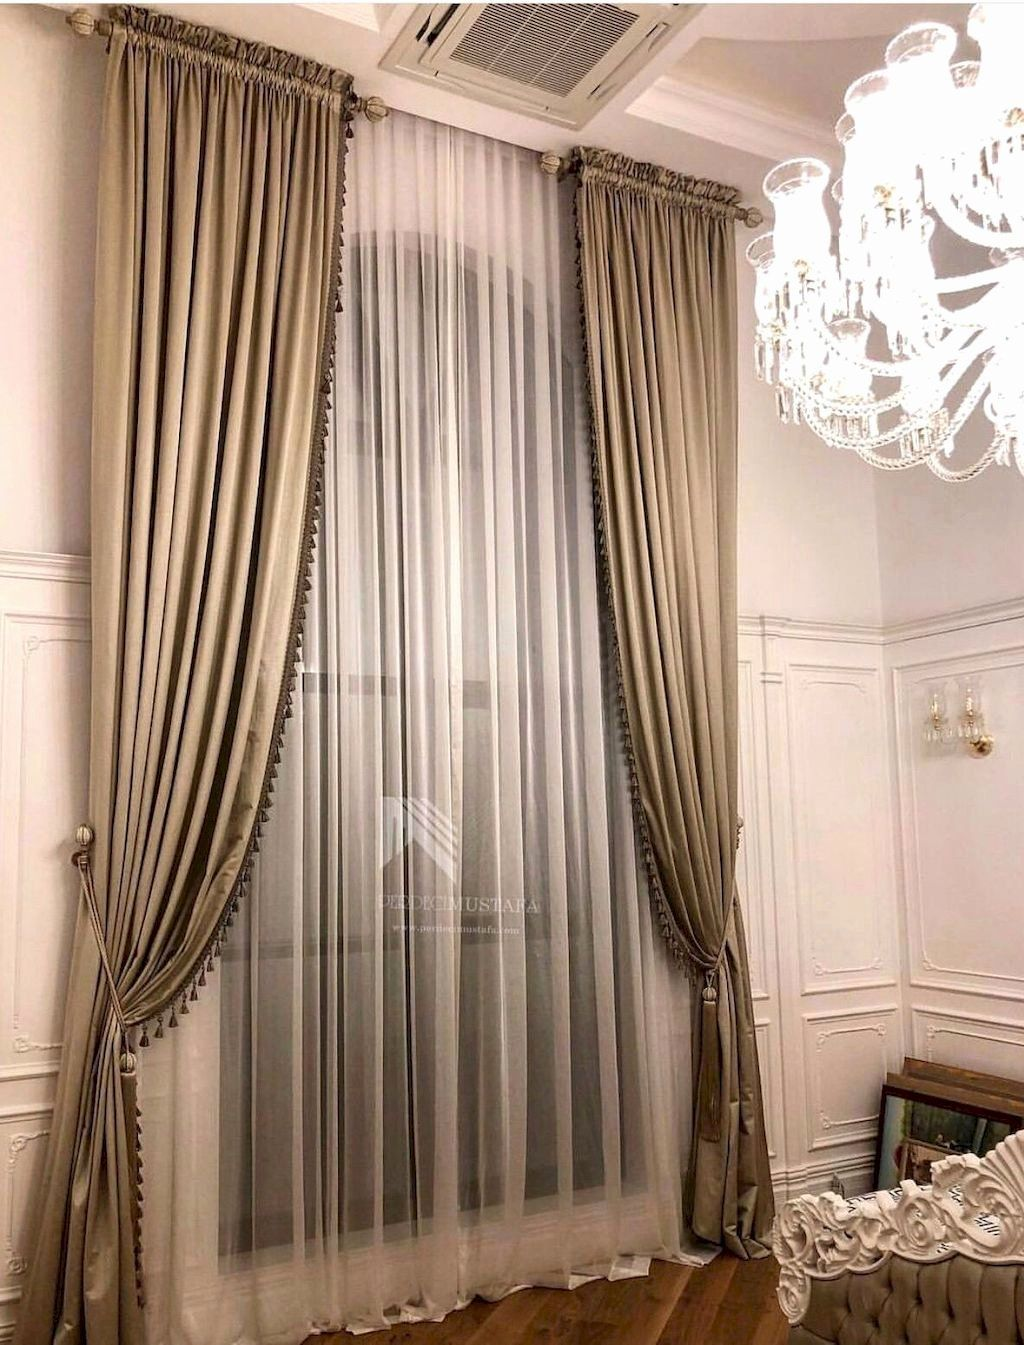 Modern Curtains For Living Room Awesome Trendy Design Curtains Can Change Your Residence Curtains Living Room Curtain Designs Modern Curtains